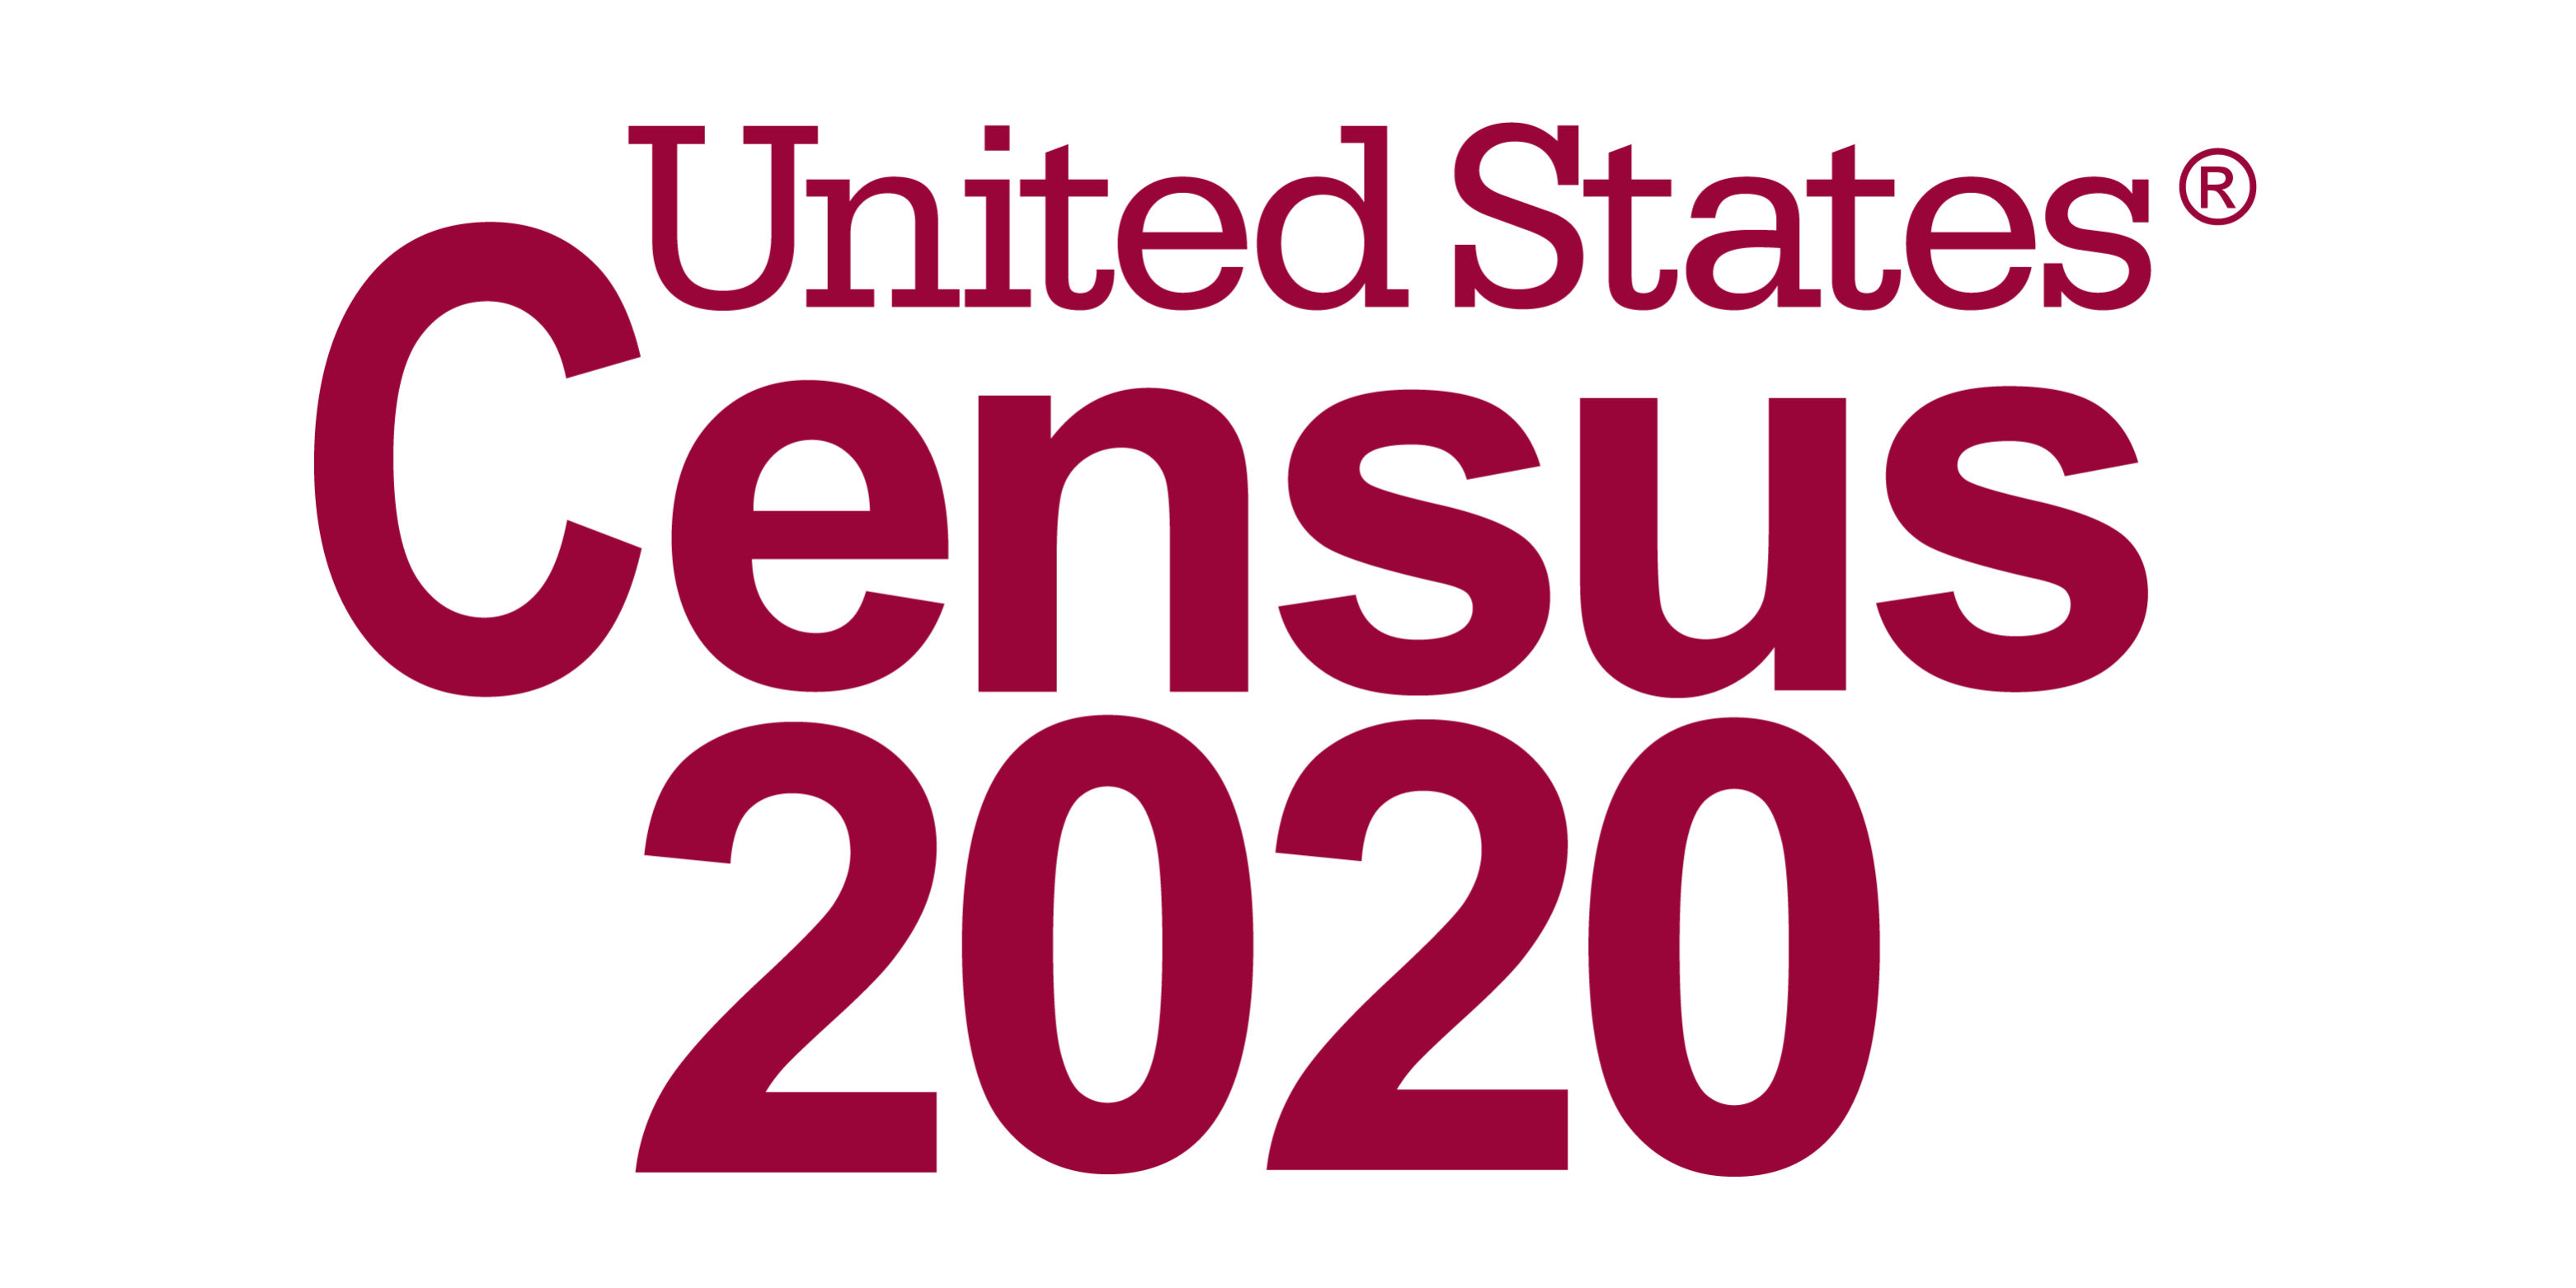 2020 Census official logo